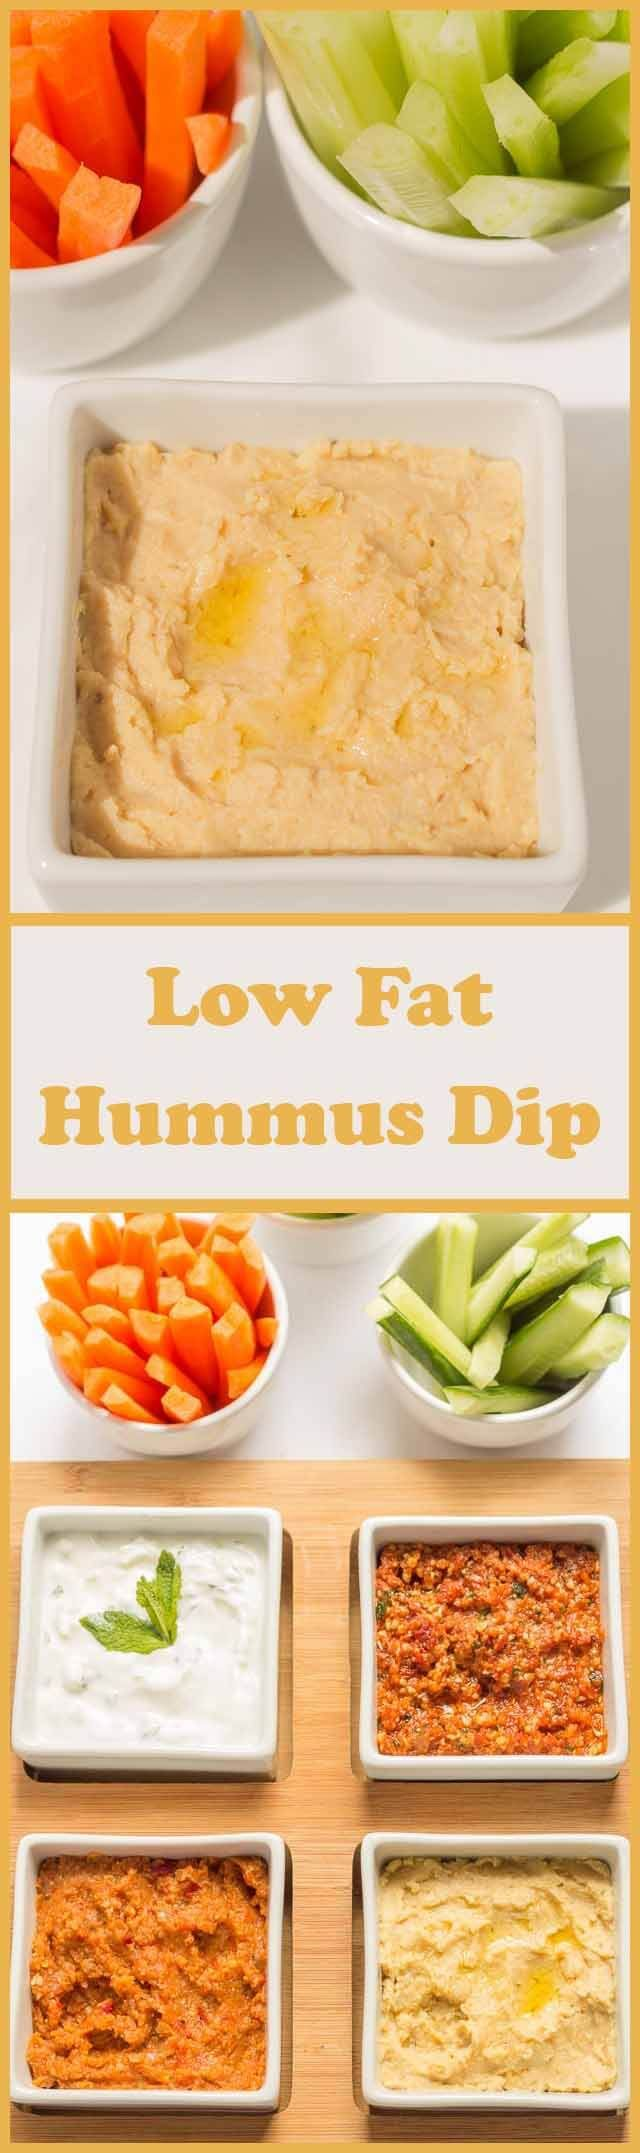 This low fat hummus dip has all the familiar Mediterranean flavours you would expect from the classic dip, except that it's lower calorie and lower fat than the original. Reduced oil and reduced salt make it a much healthier recipe overall. Perfect for sharing.